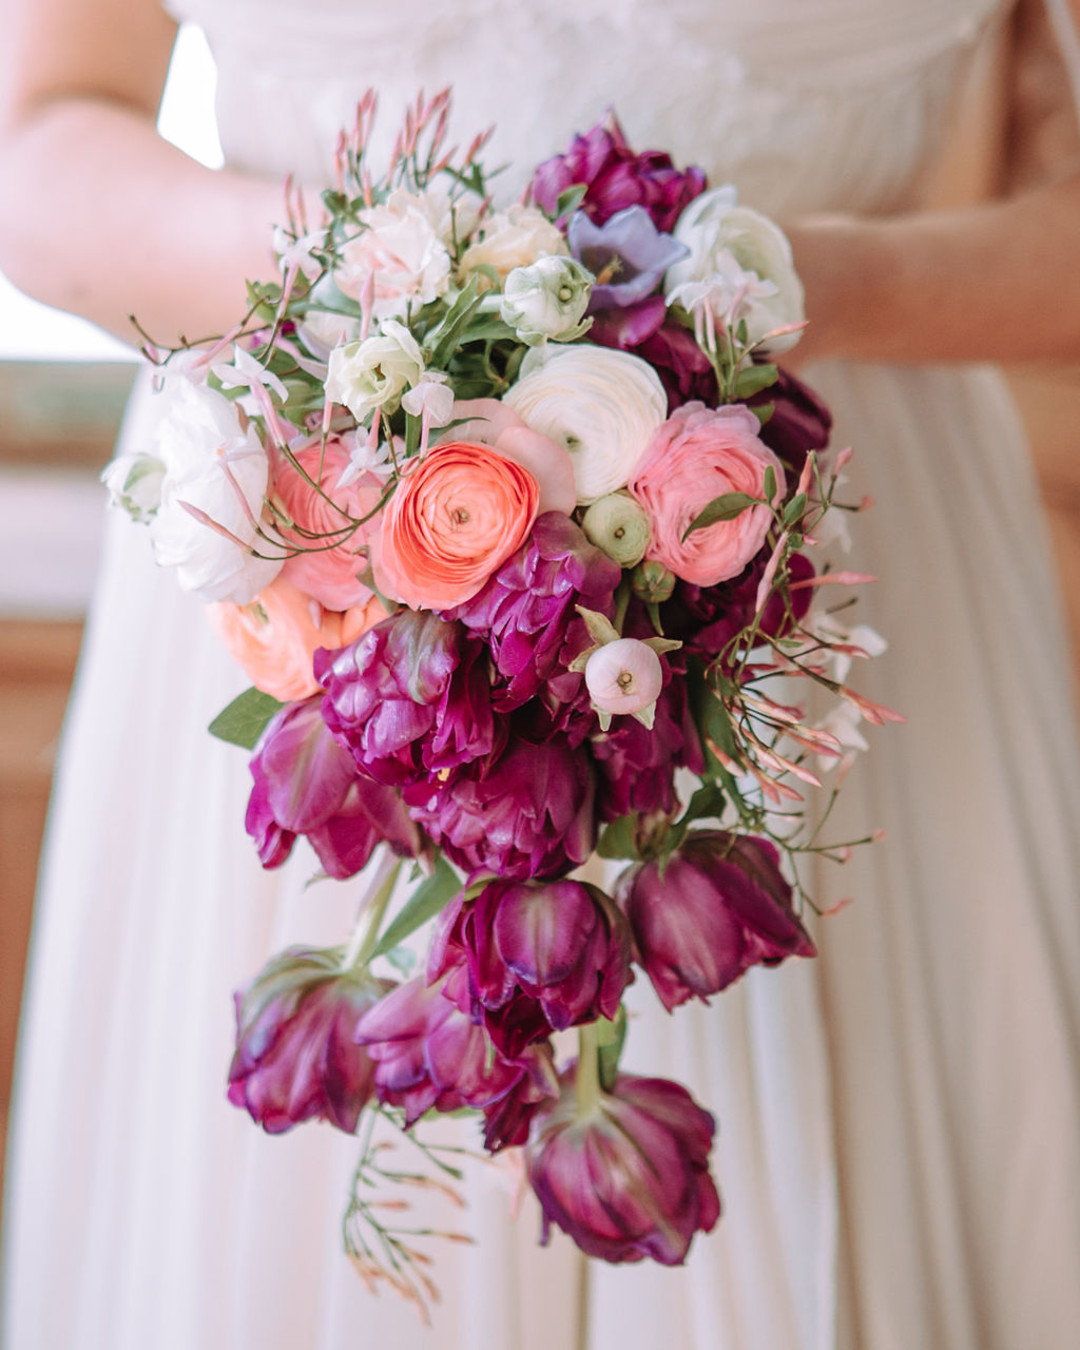 Purple cascading wedding bouquet: Bohemian wedding inspiration captured by Truly Sublime Photography. See more boho wedding ideas on CHItheeWED.com!